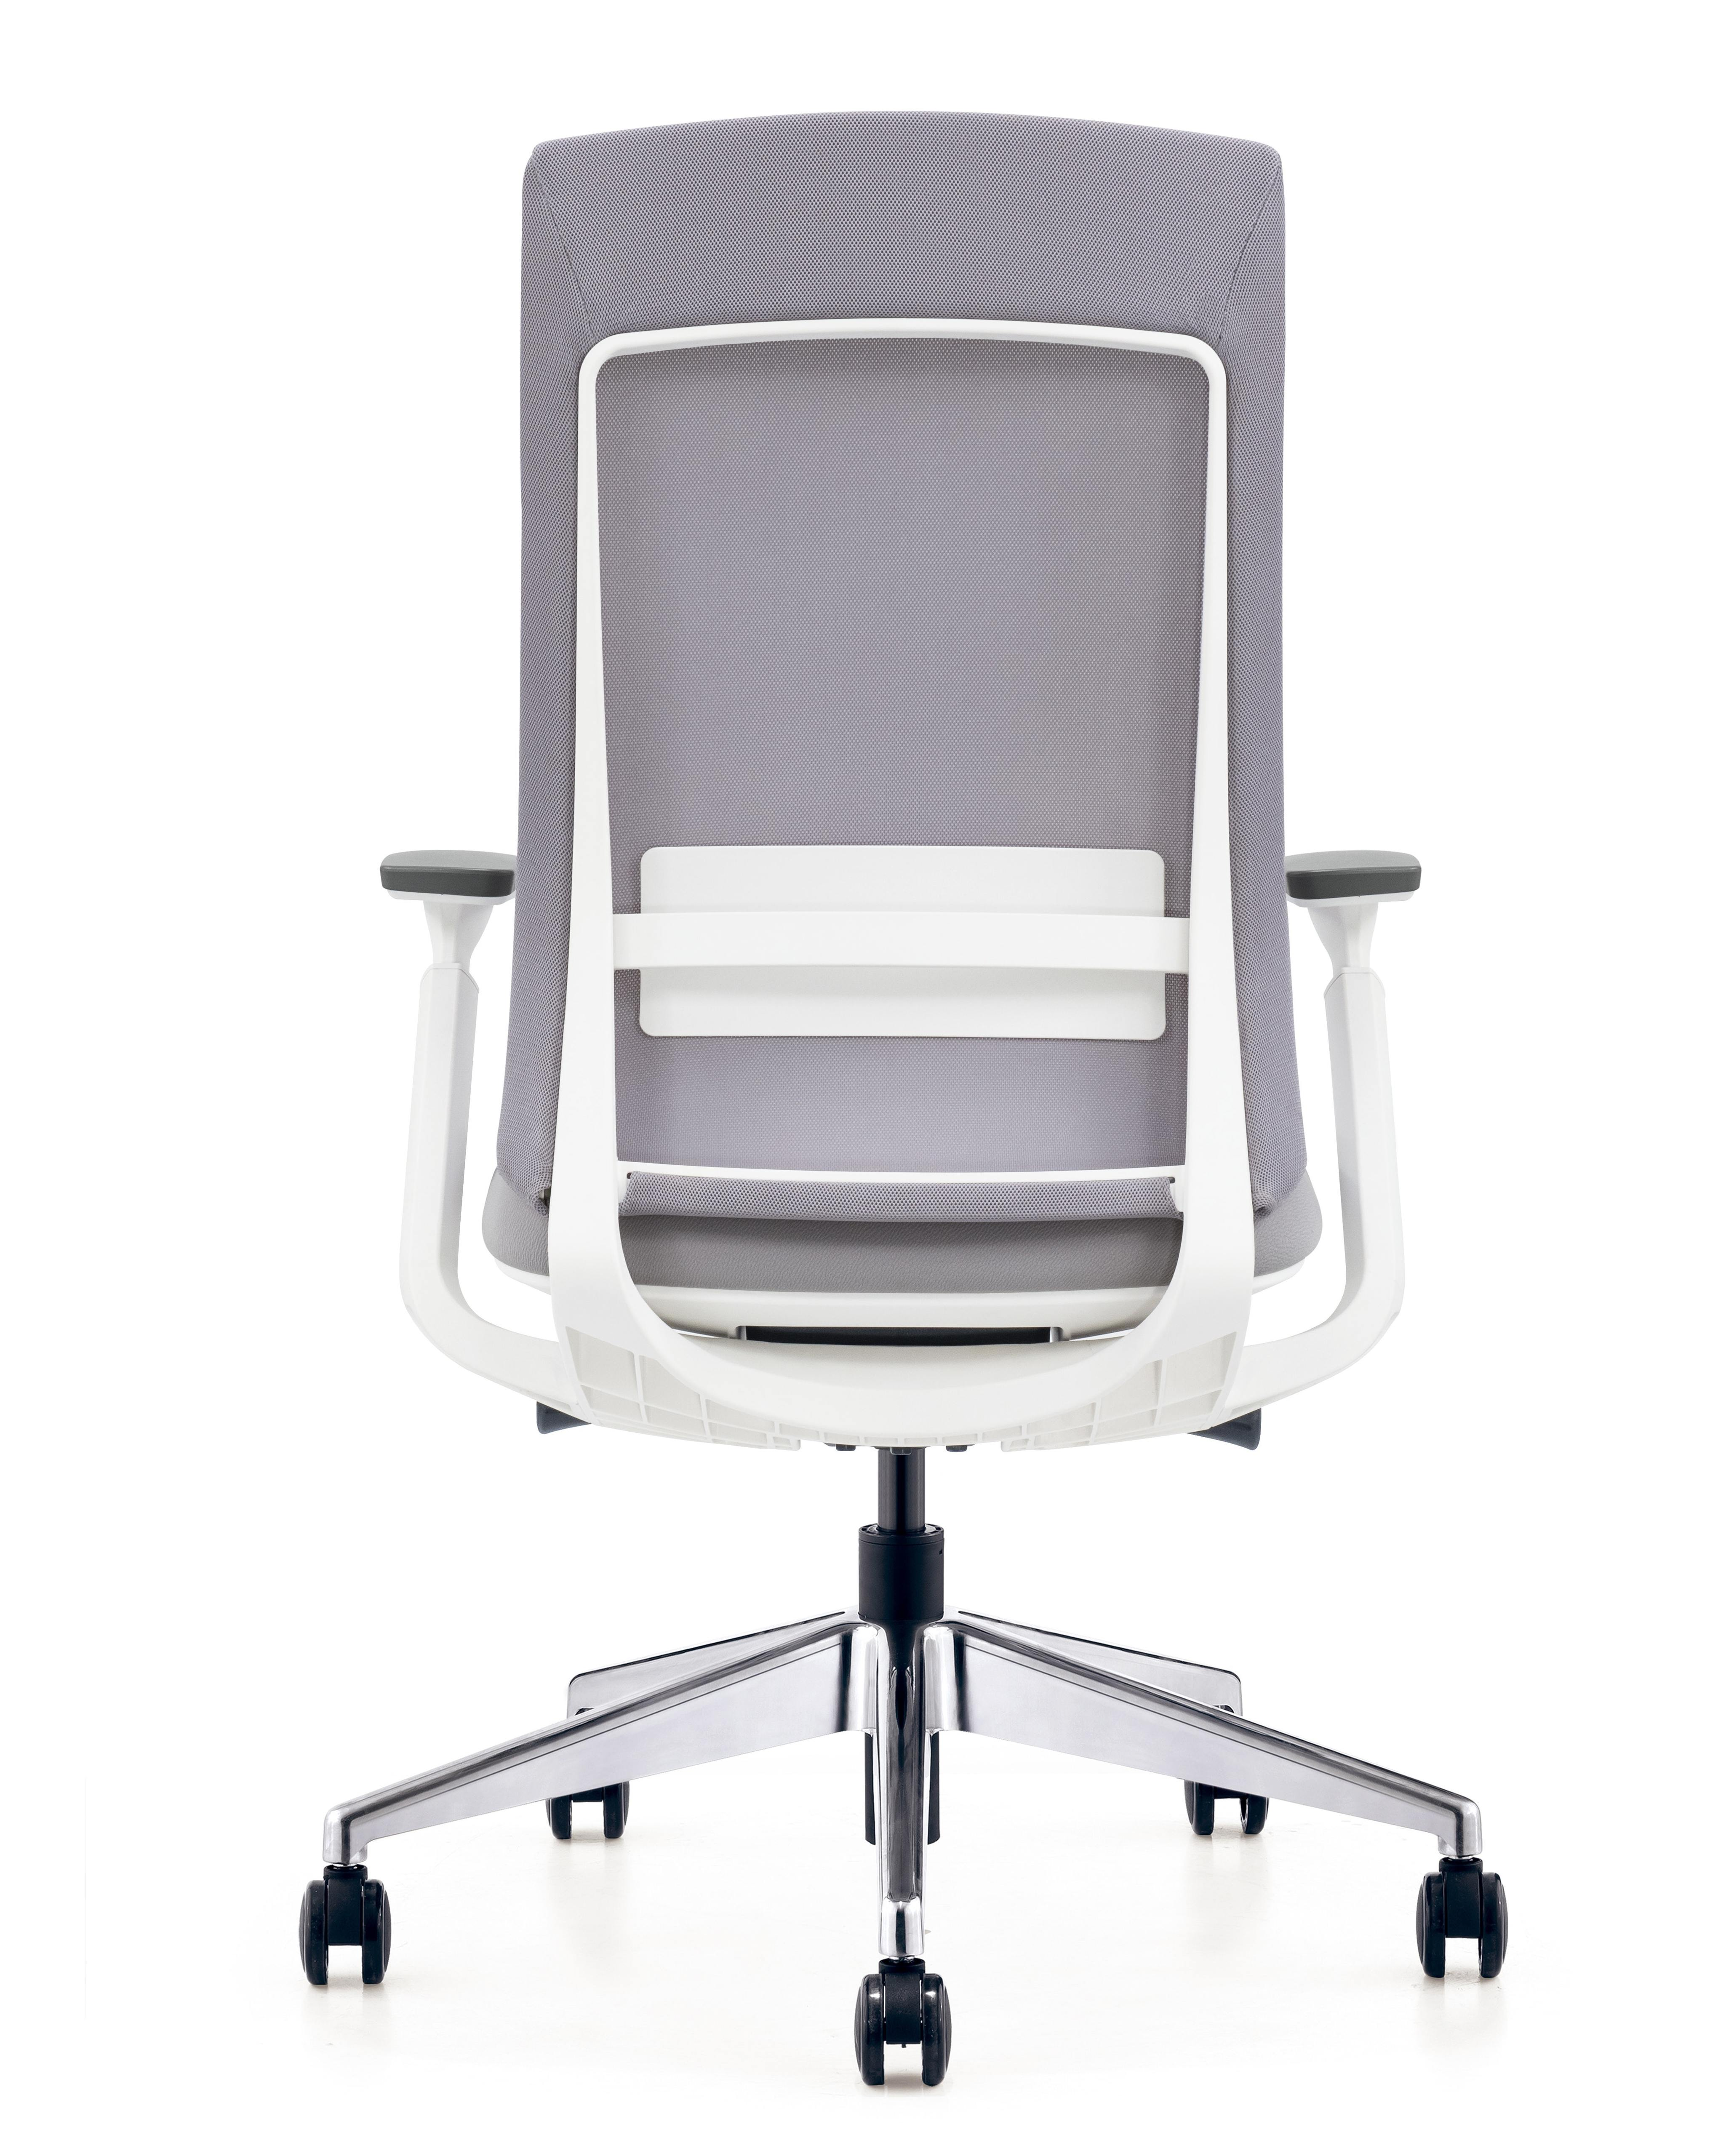 gray elevate chair back